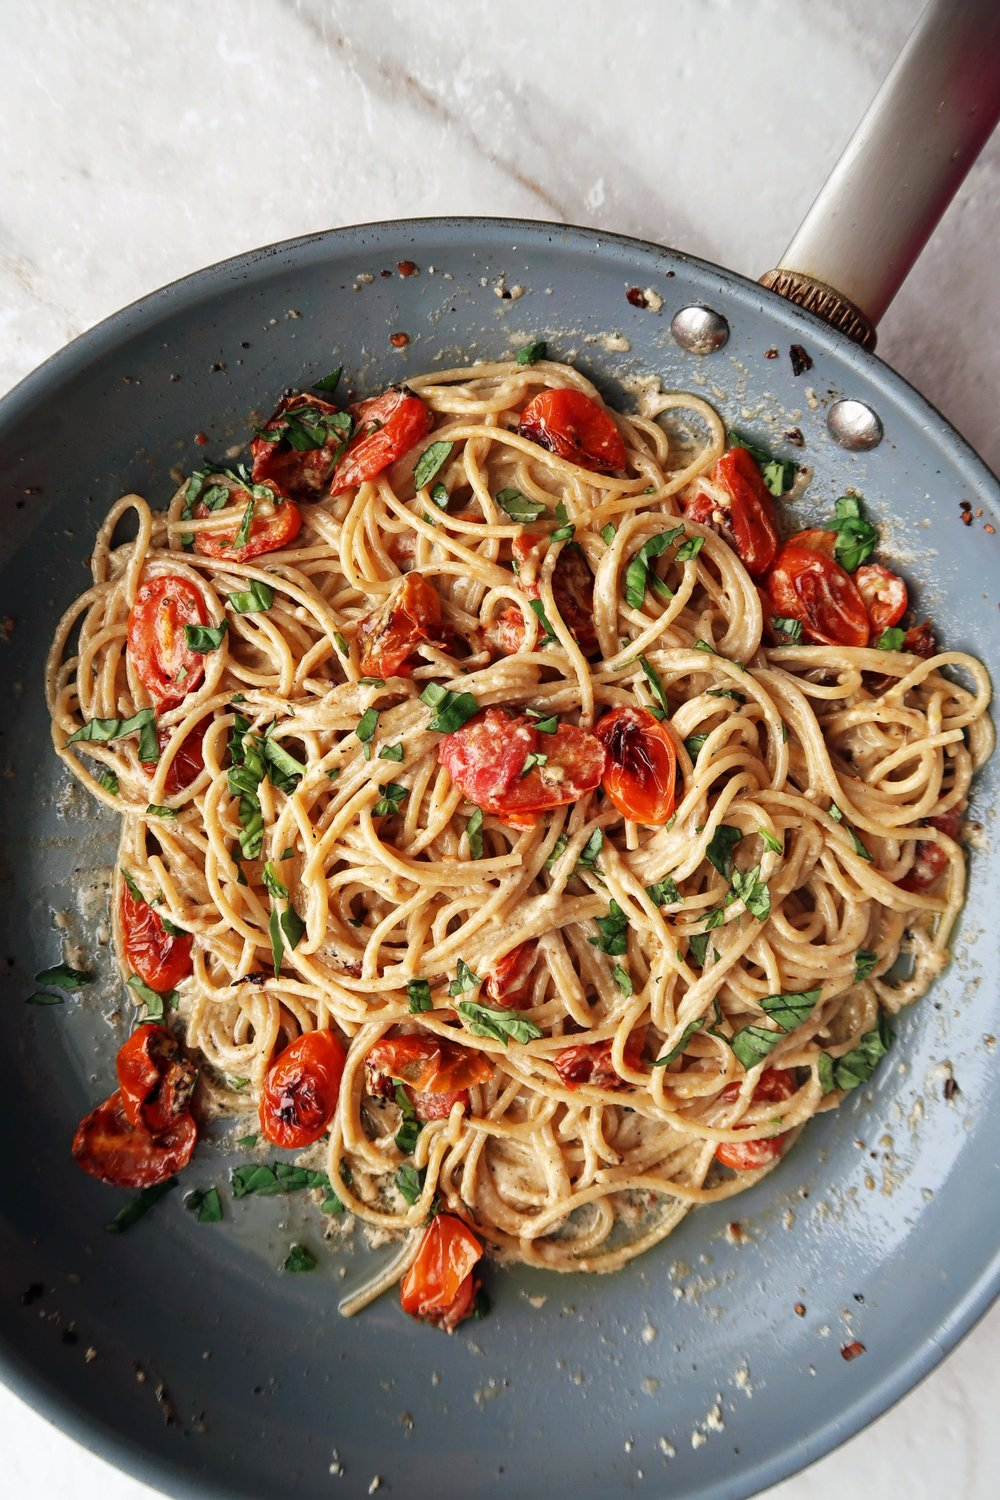 Spaghetti with roasted cherry tomatoes and basil in a skillet.